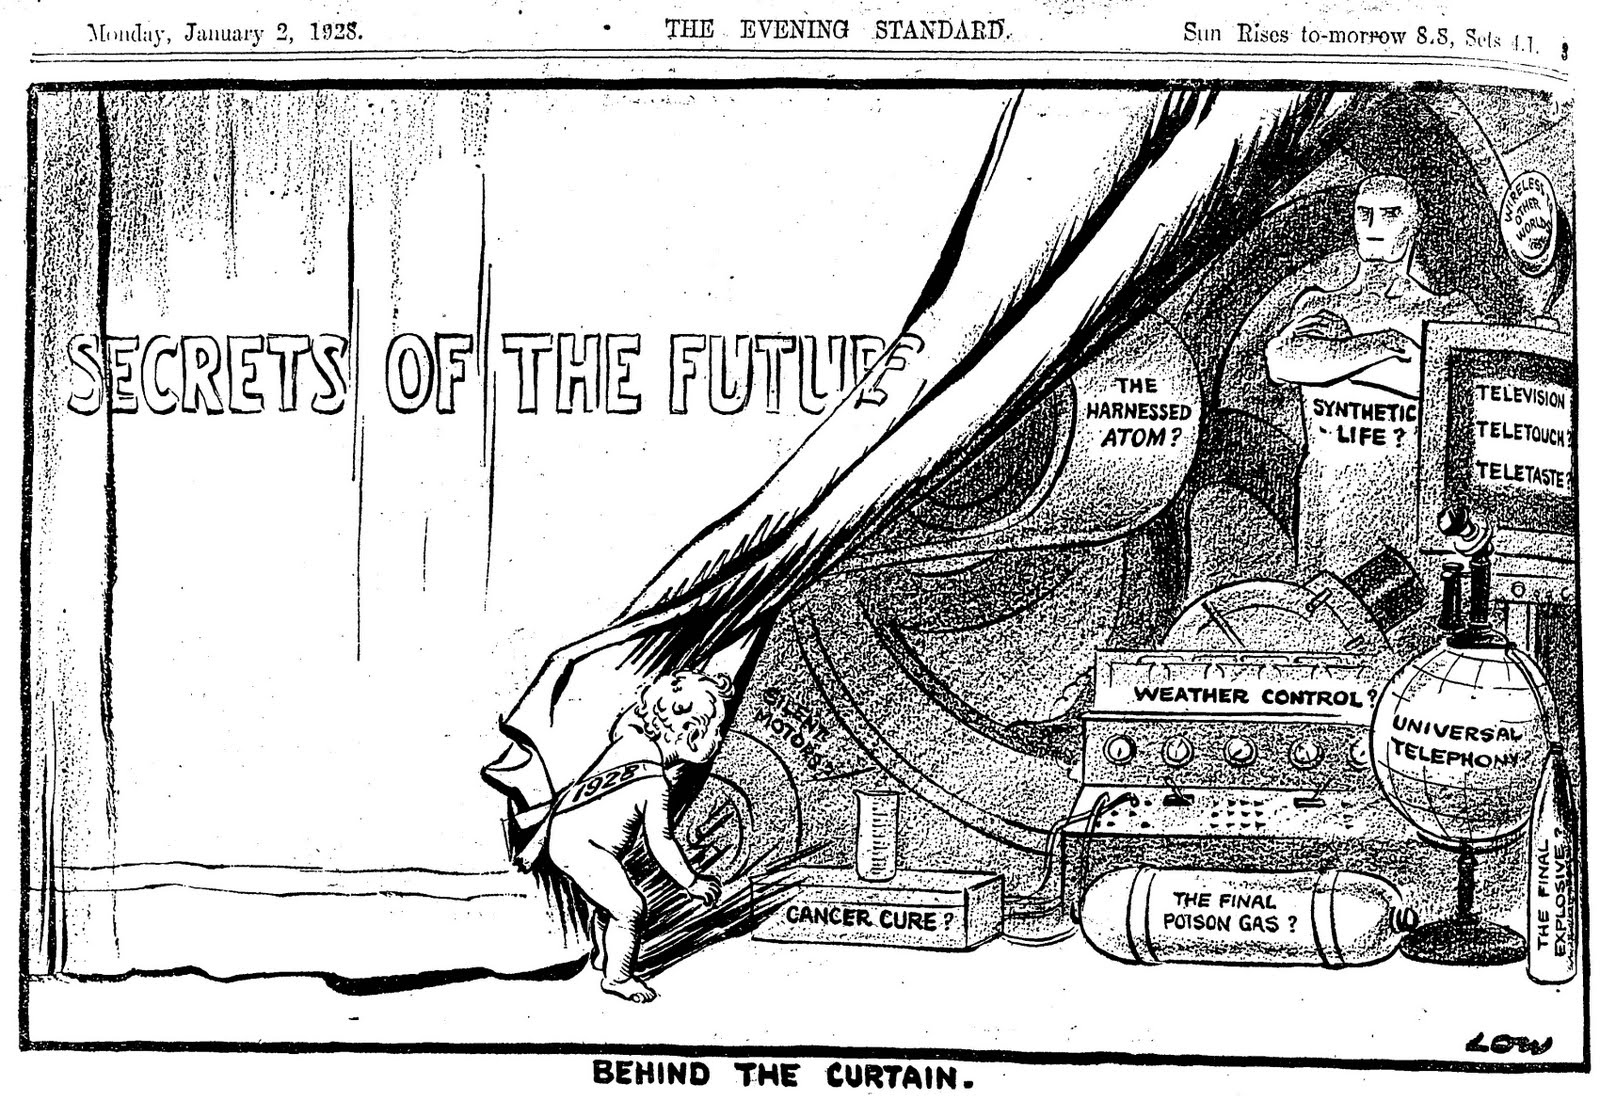 Iron curtain cartoon -  Old Political Cartoons With Explanations C British Cartoon Archive